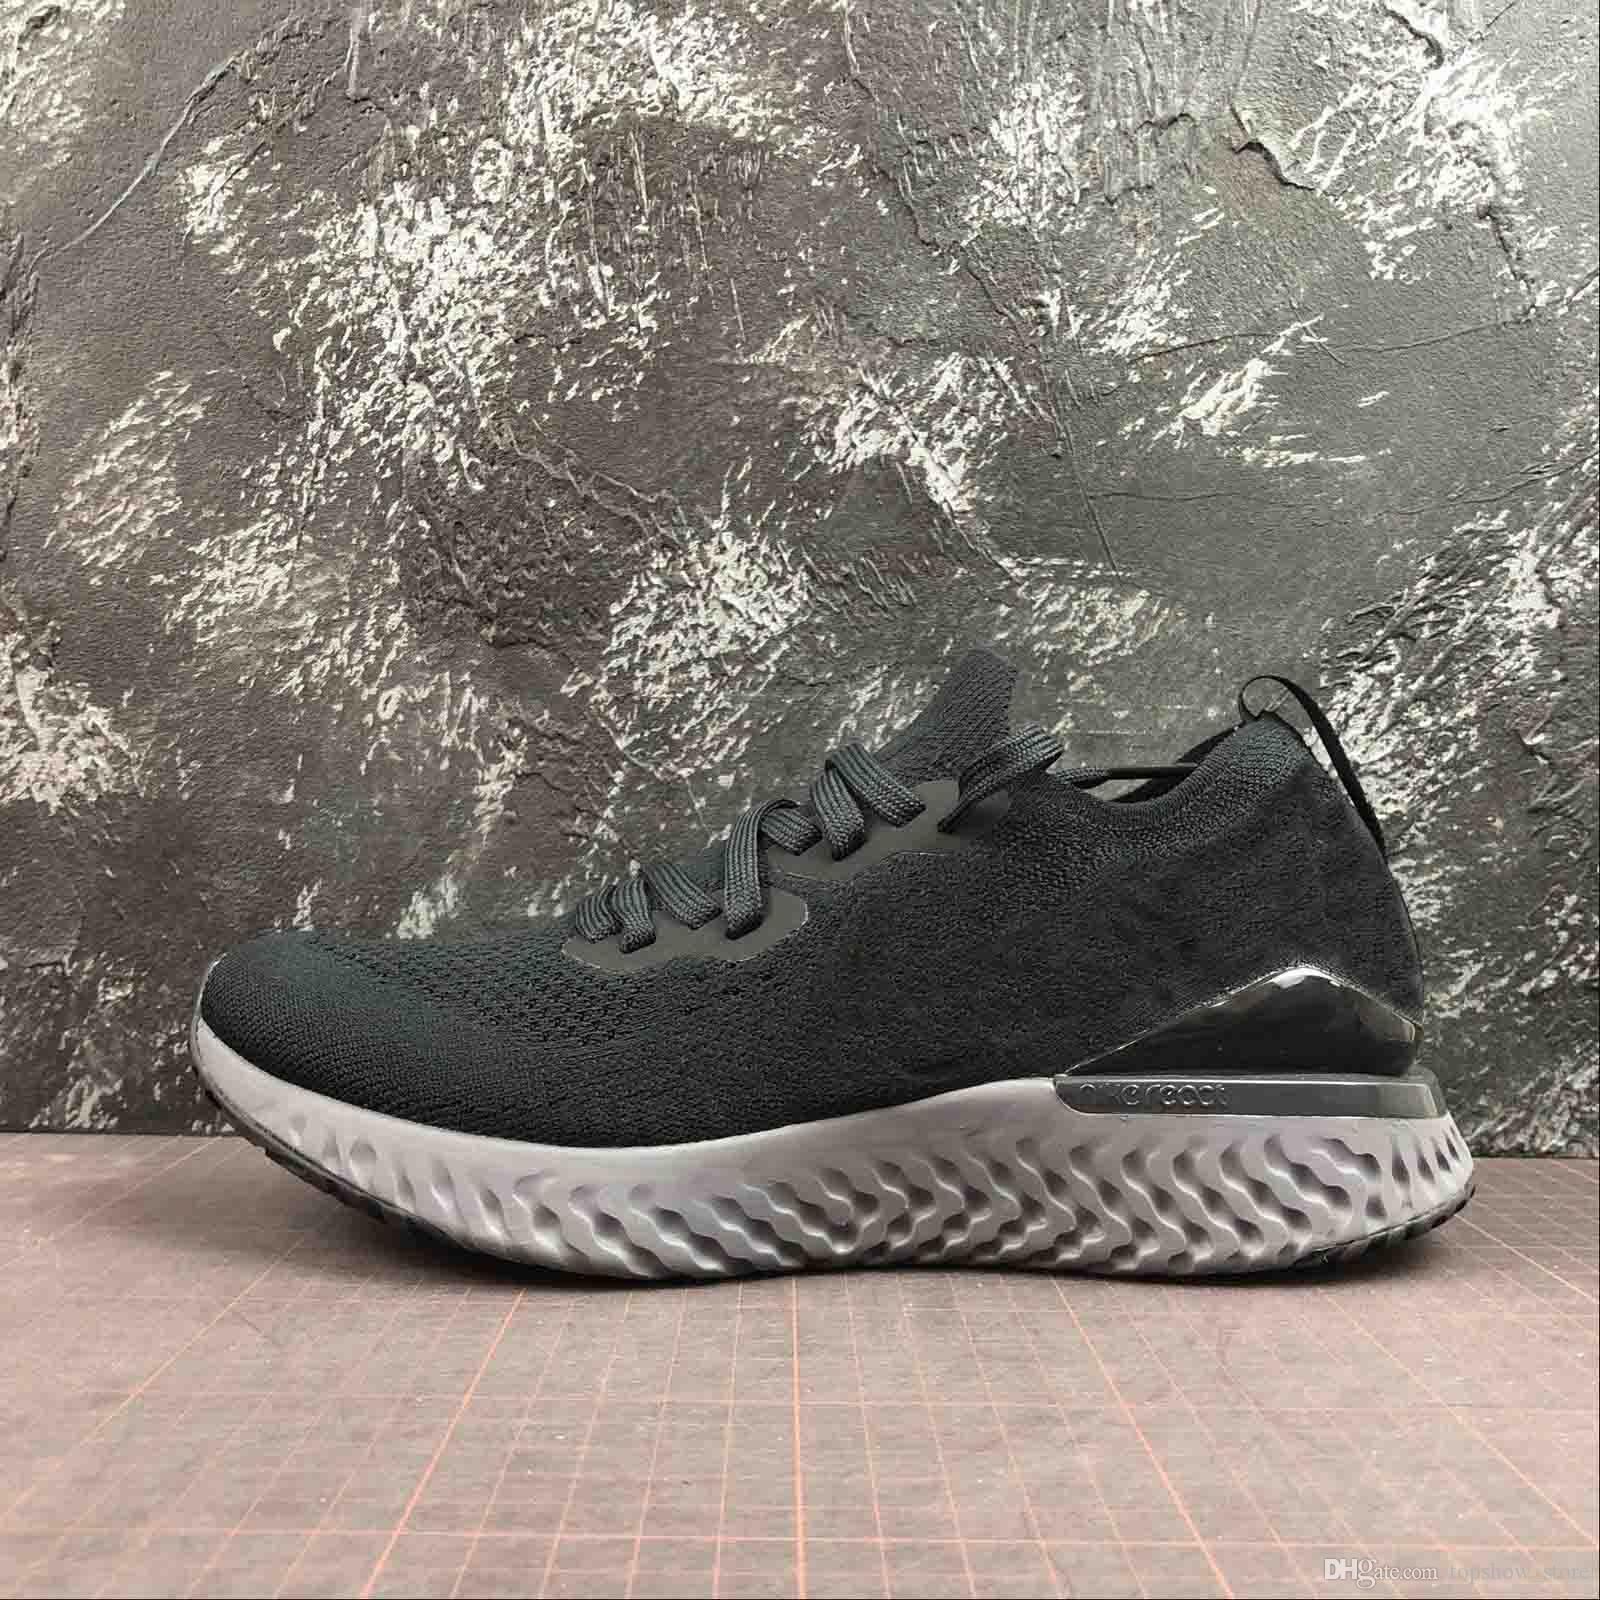 Cheap Sport Shoes React Running Shoes Sneakers Classic Multi Purposes Trainers For Men Women Training Fitness Size 36 45 Good Running Shoes Skechers